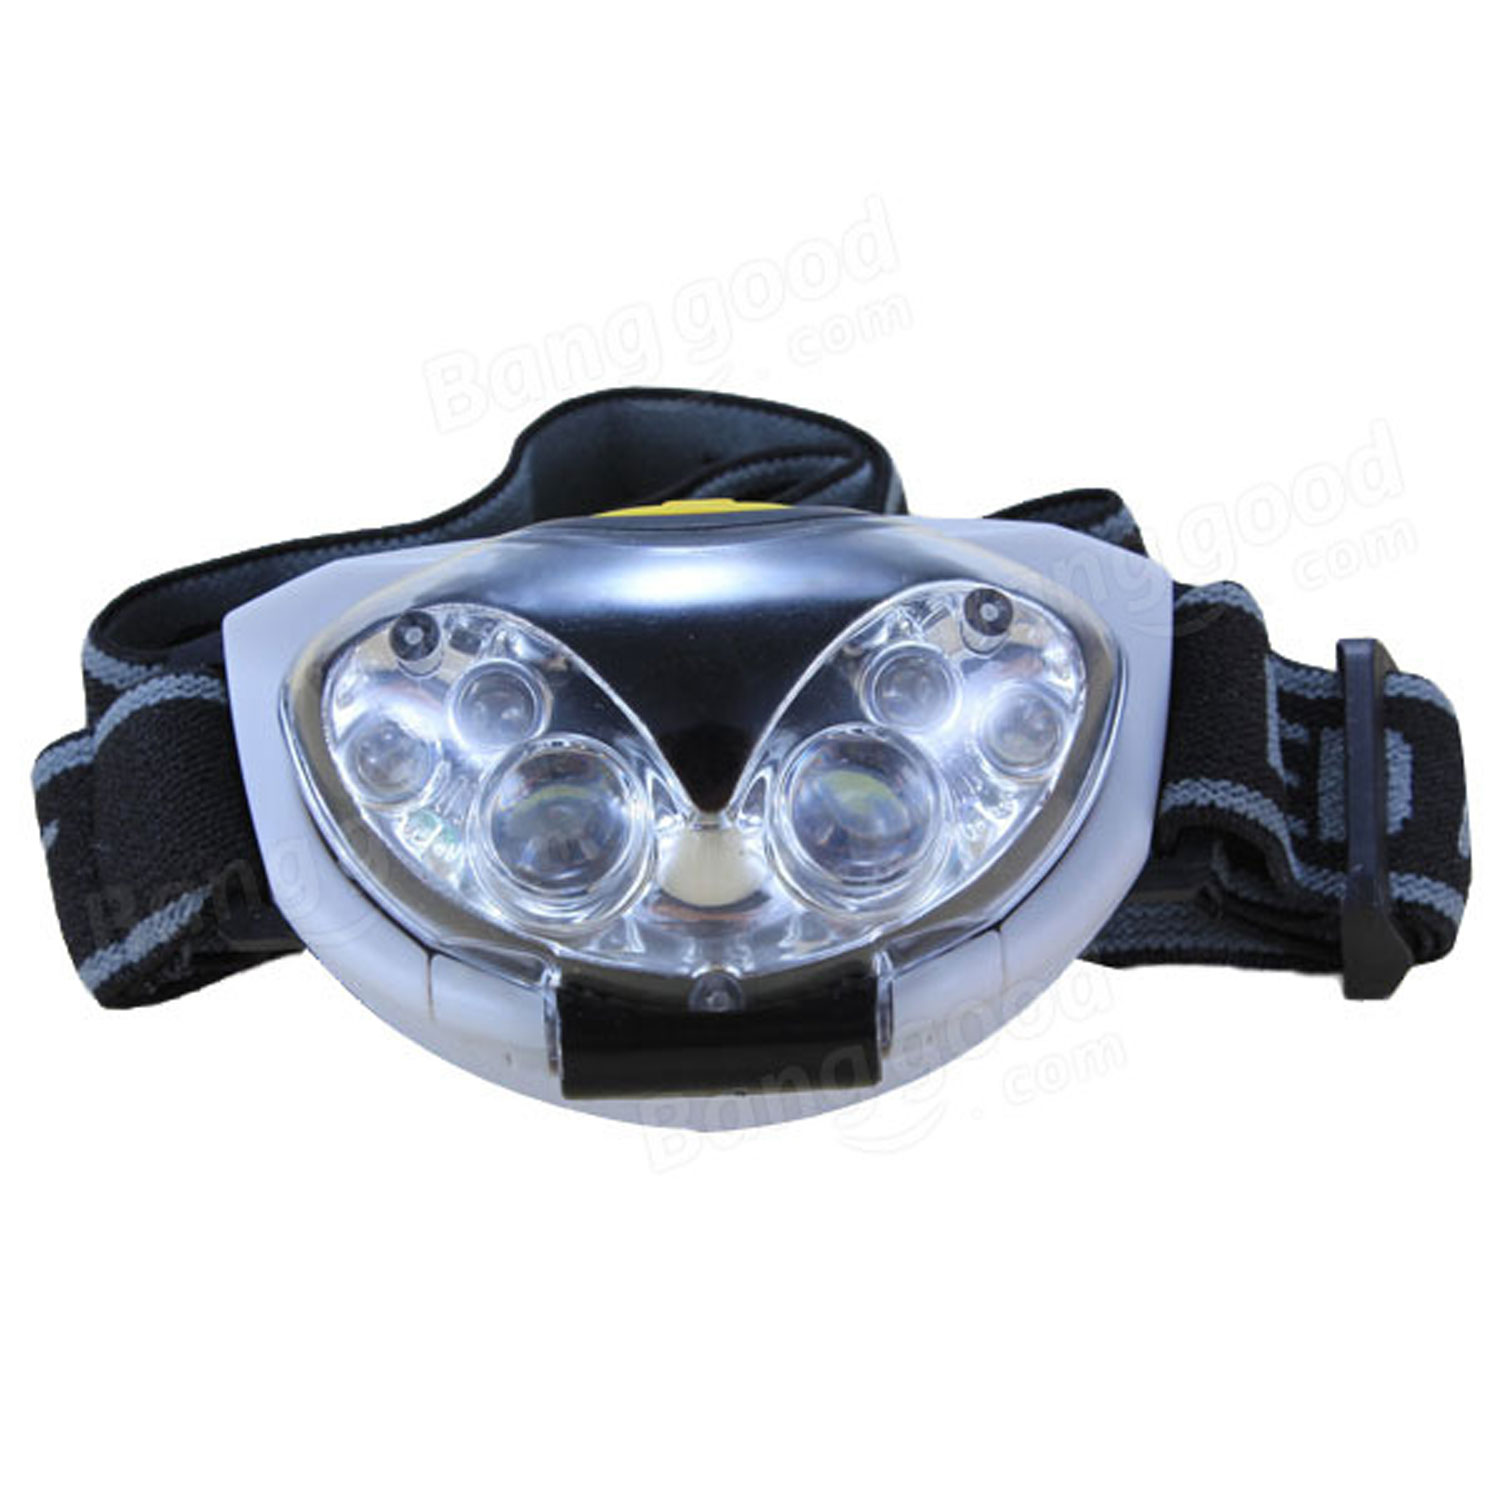 LED Headband Light